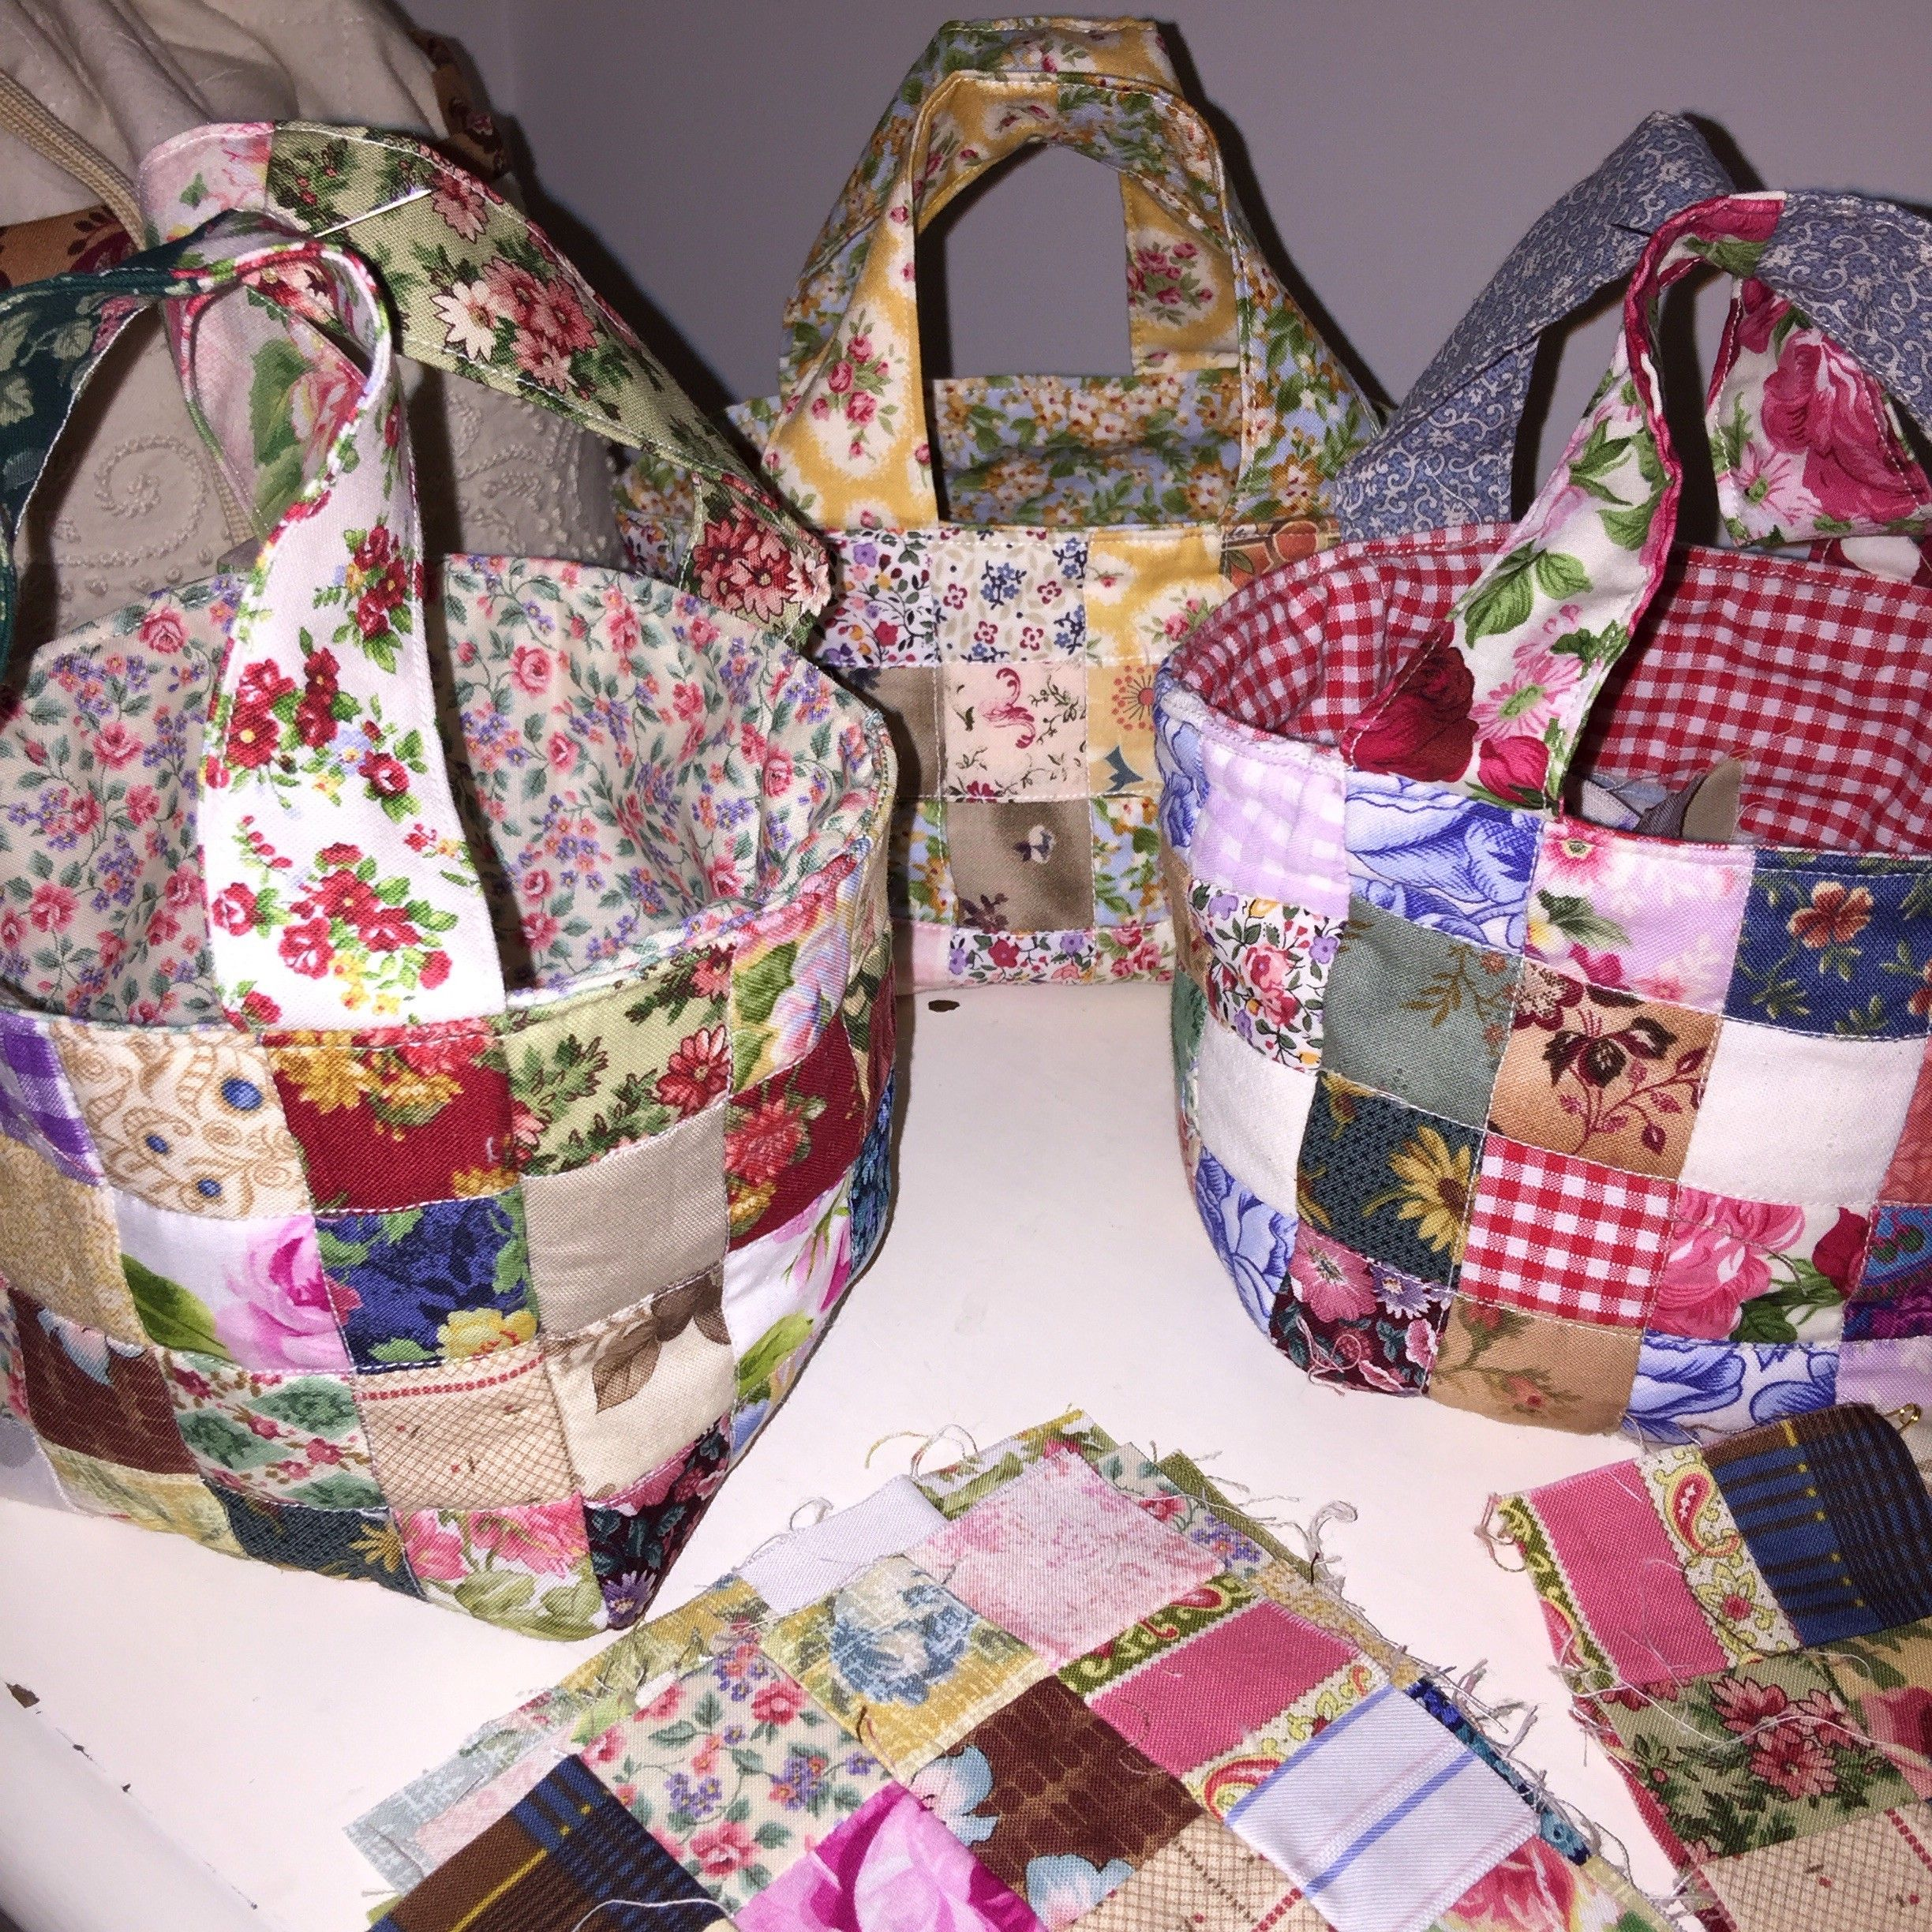 Scrap Fabric Baskets – Tutorial. Making these little scrap fabric baskets is a really nice way to use up some very small scraps – even ones that don't look that good. Once they are incorporated together they are very pretty. They are handy to have in the sewing space next to your machine for holding … Continue reading Quilted Scrap Fabric Baskets – Tutorial → #scrapfabric